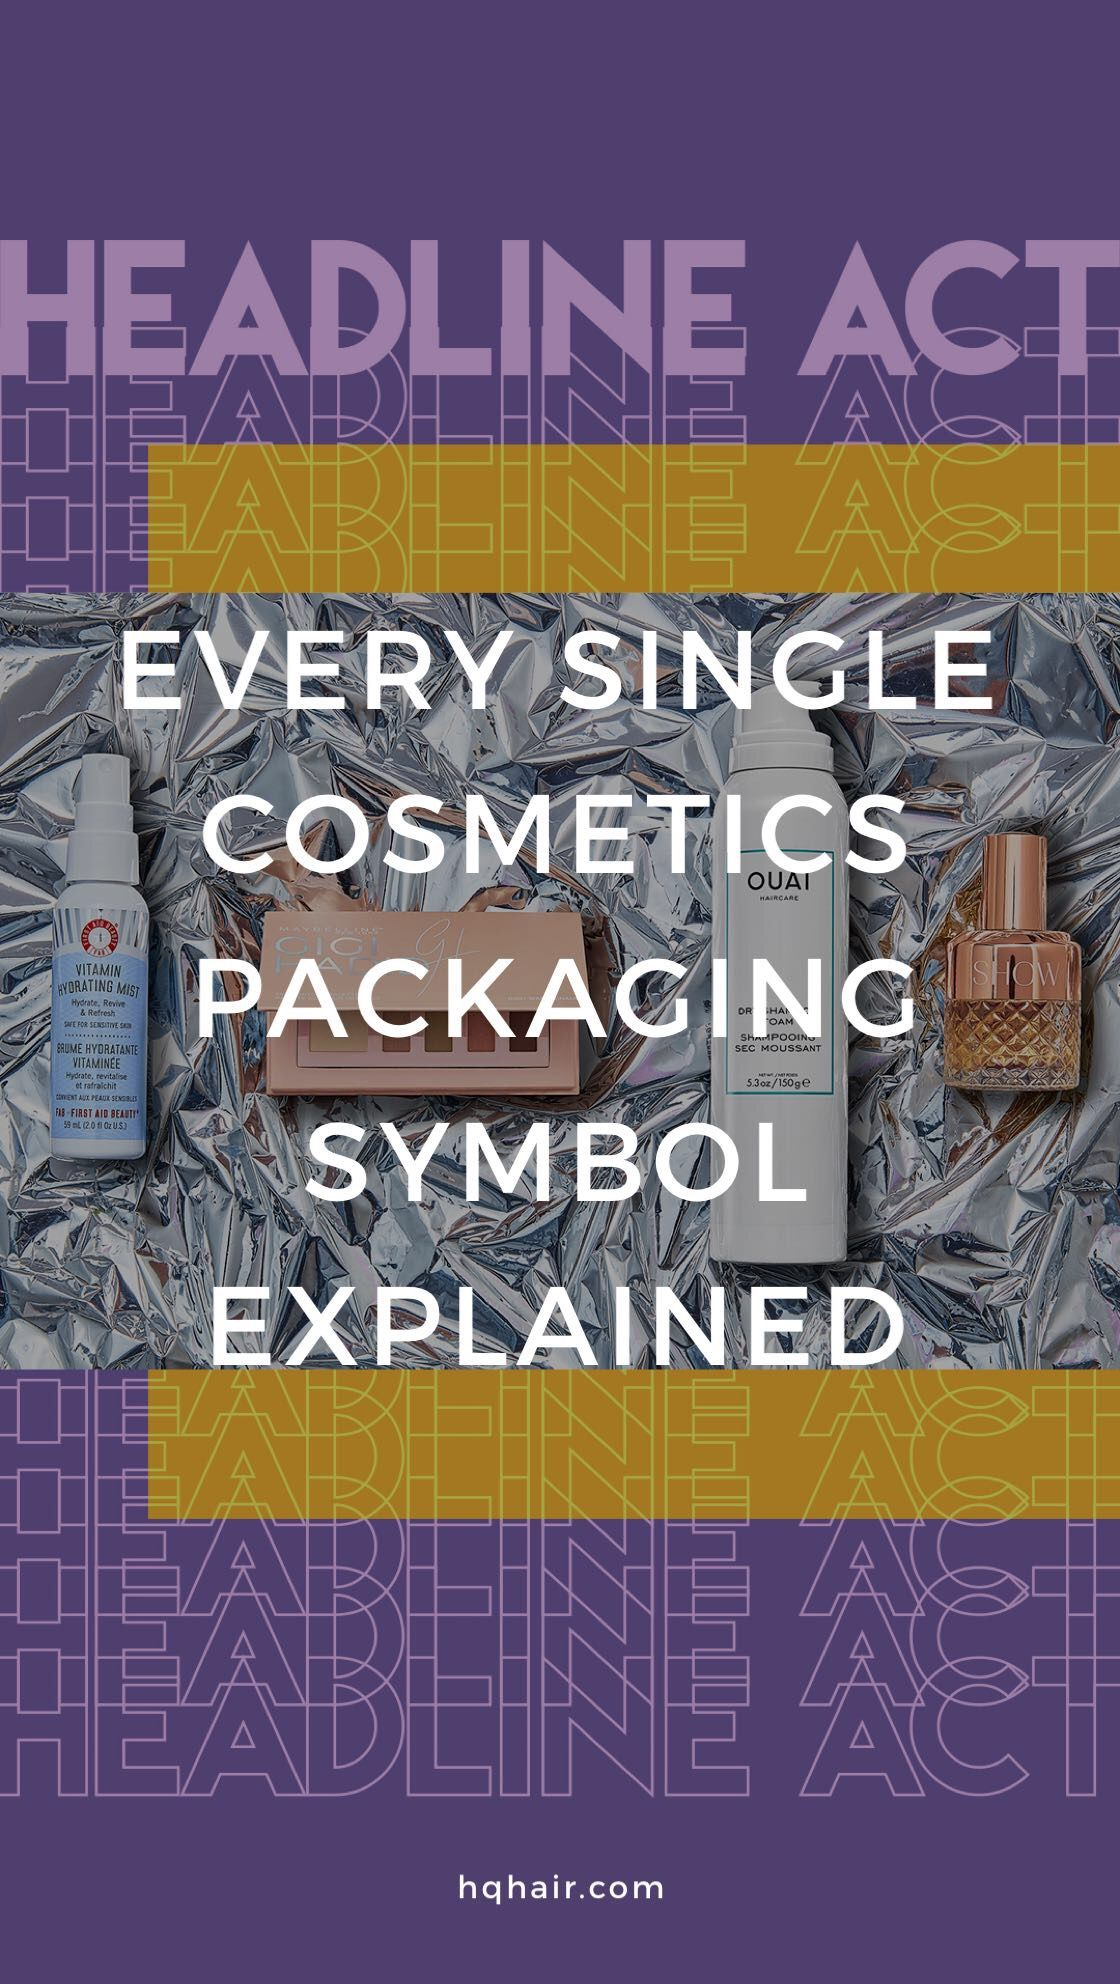 Cosmetics packaging symbols demystified Cosmetic